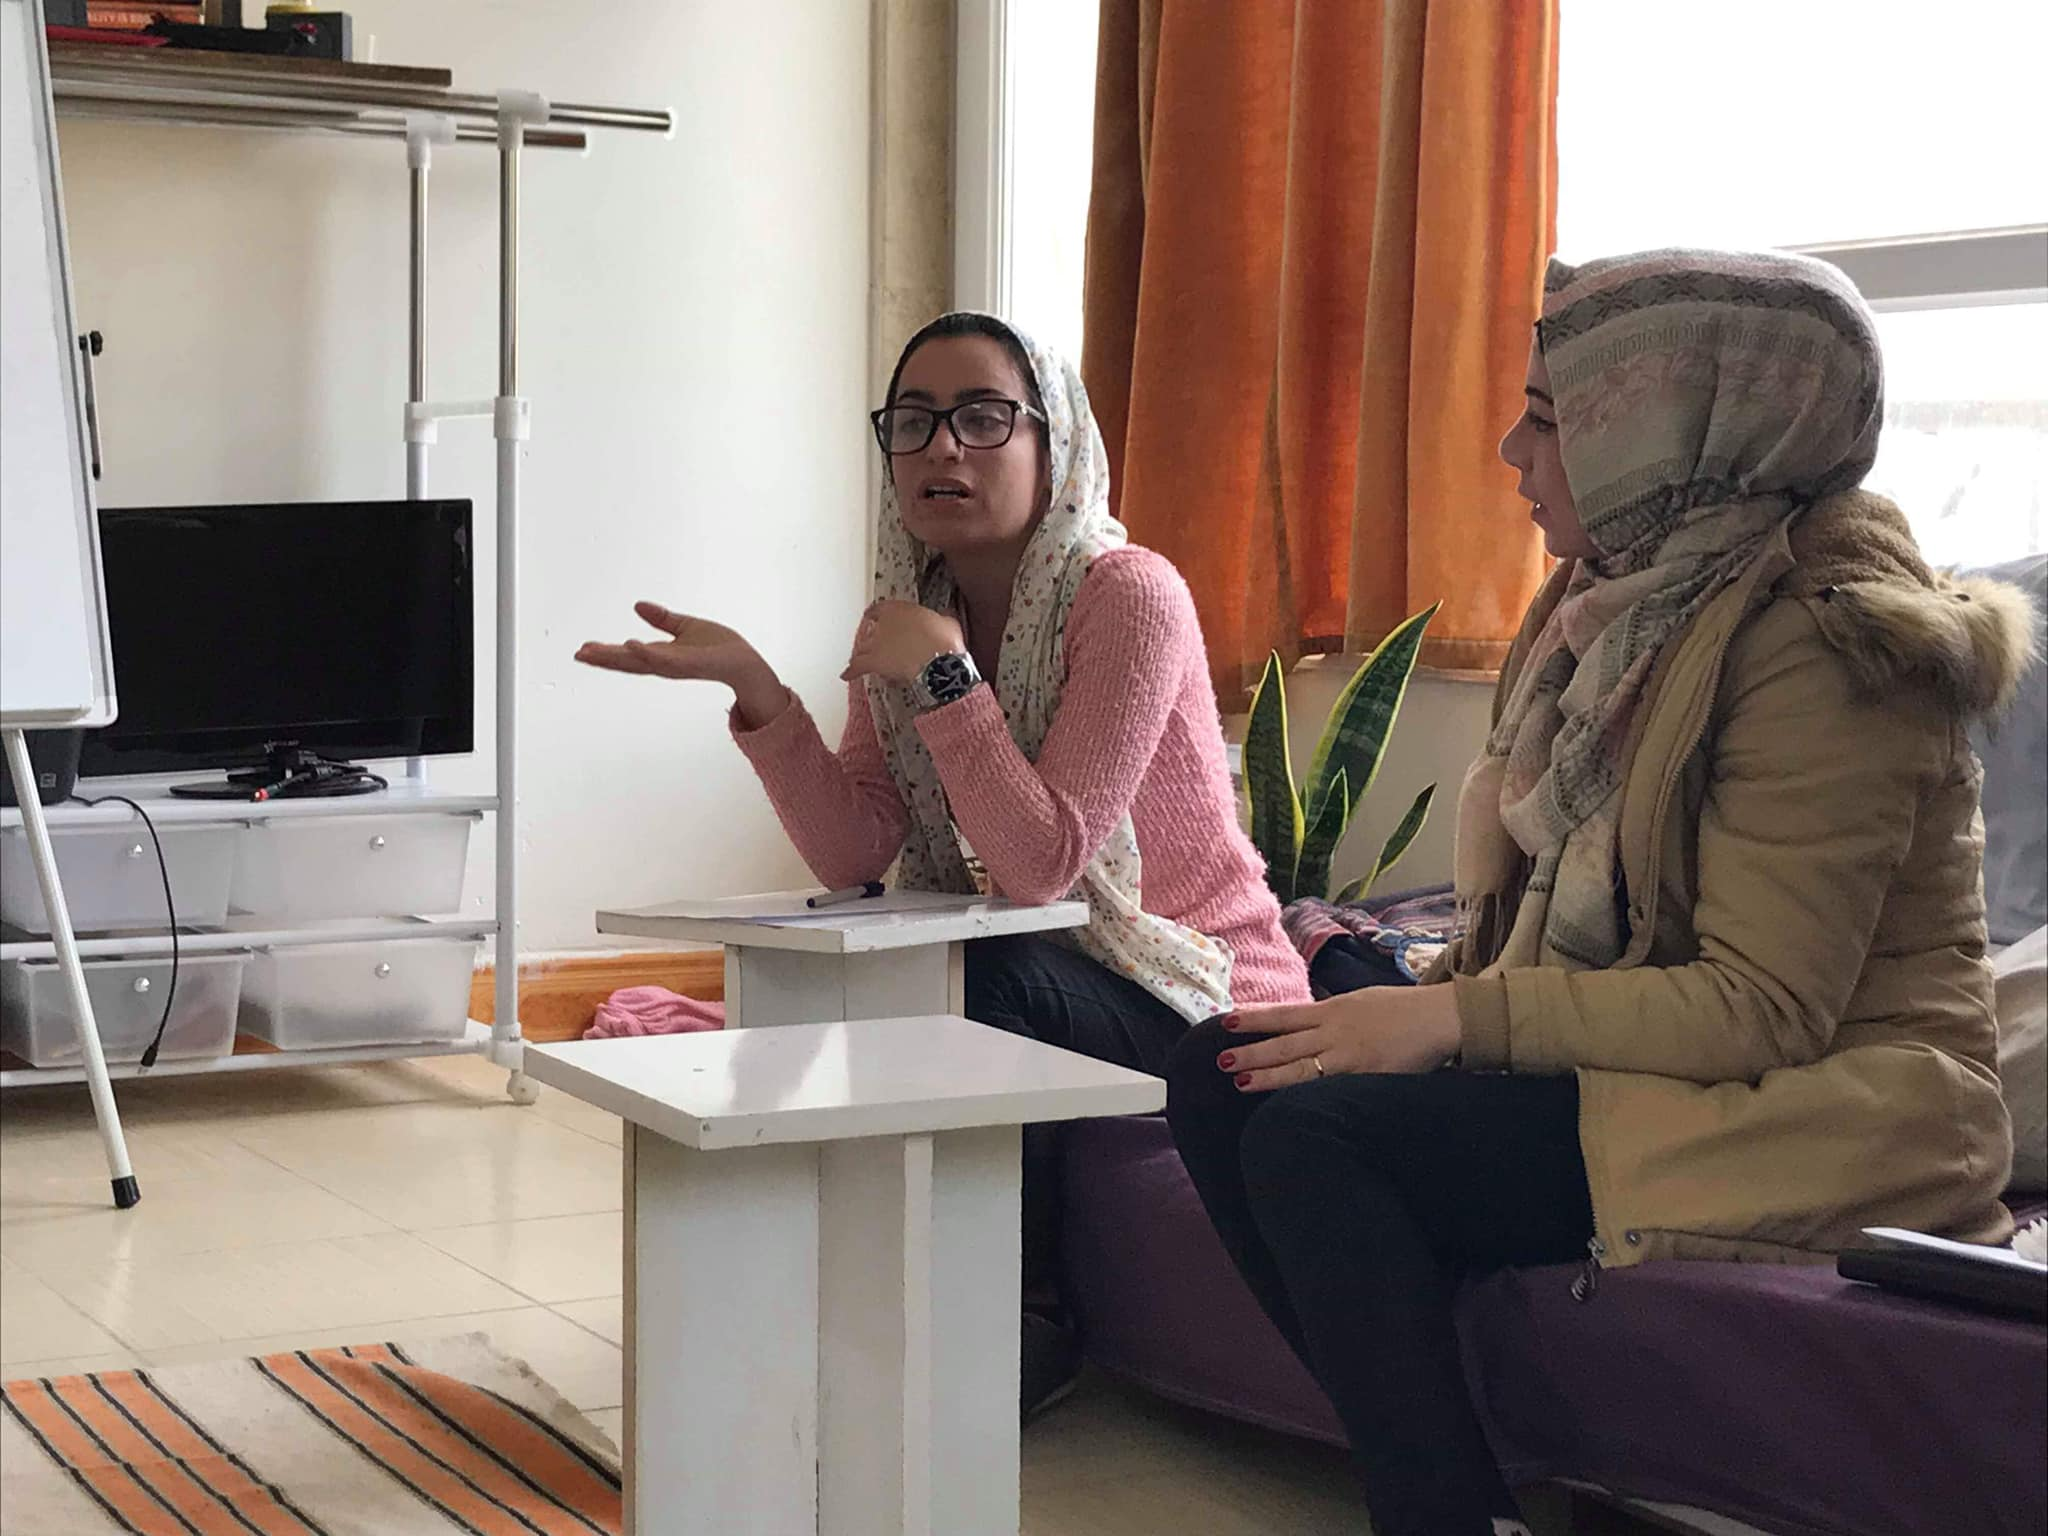 Participants in the 2019 Dohuk pilot, held in partnership with Youth Speak.